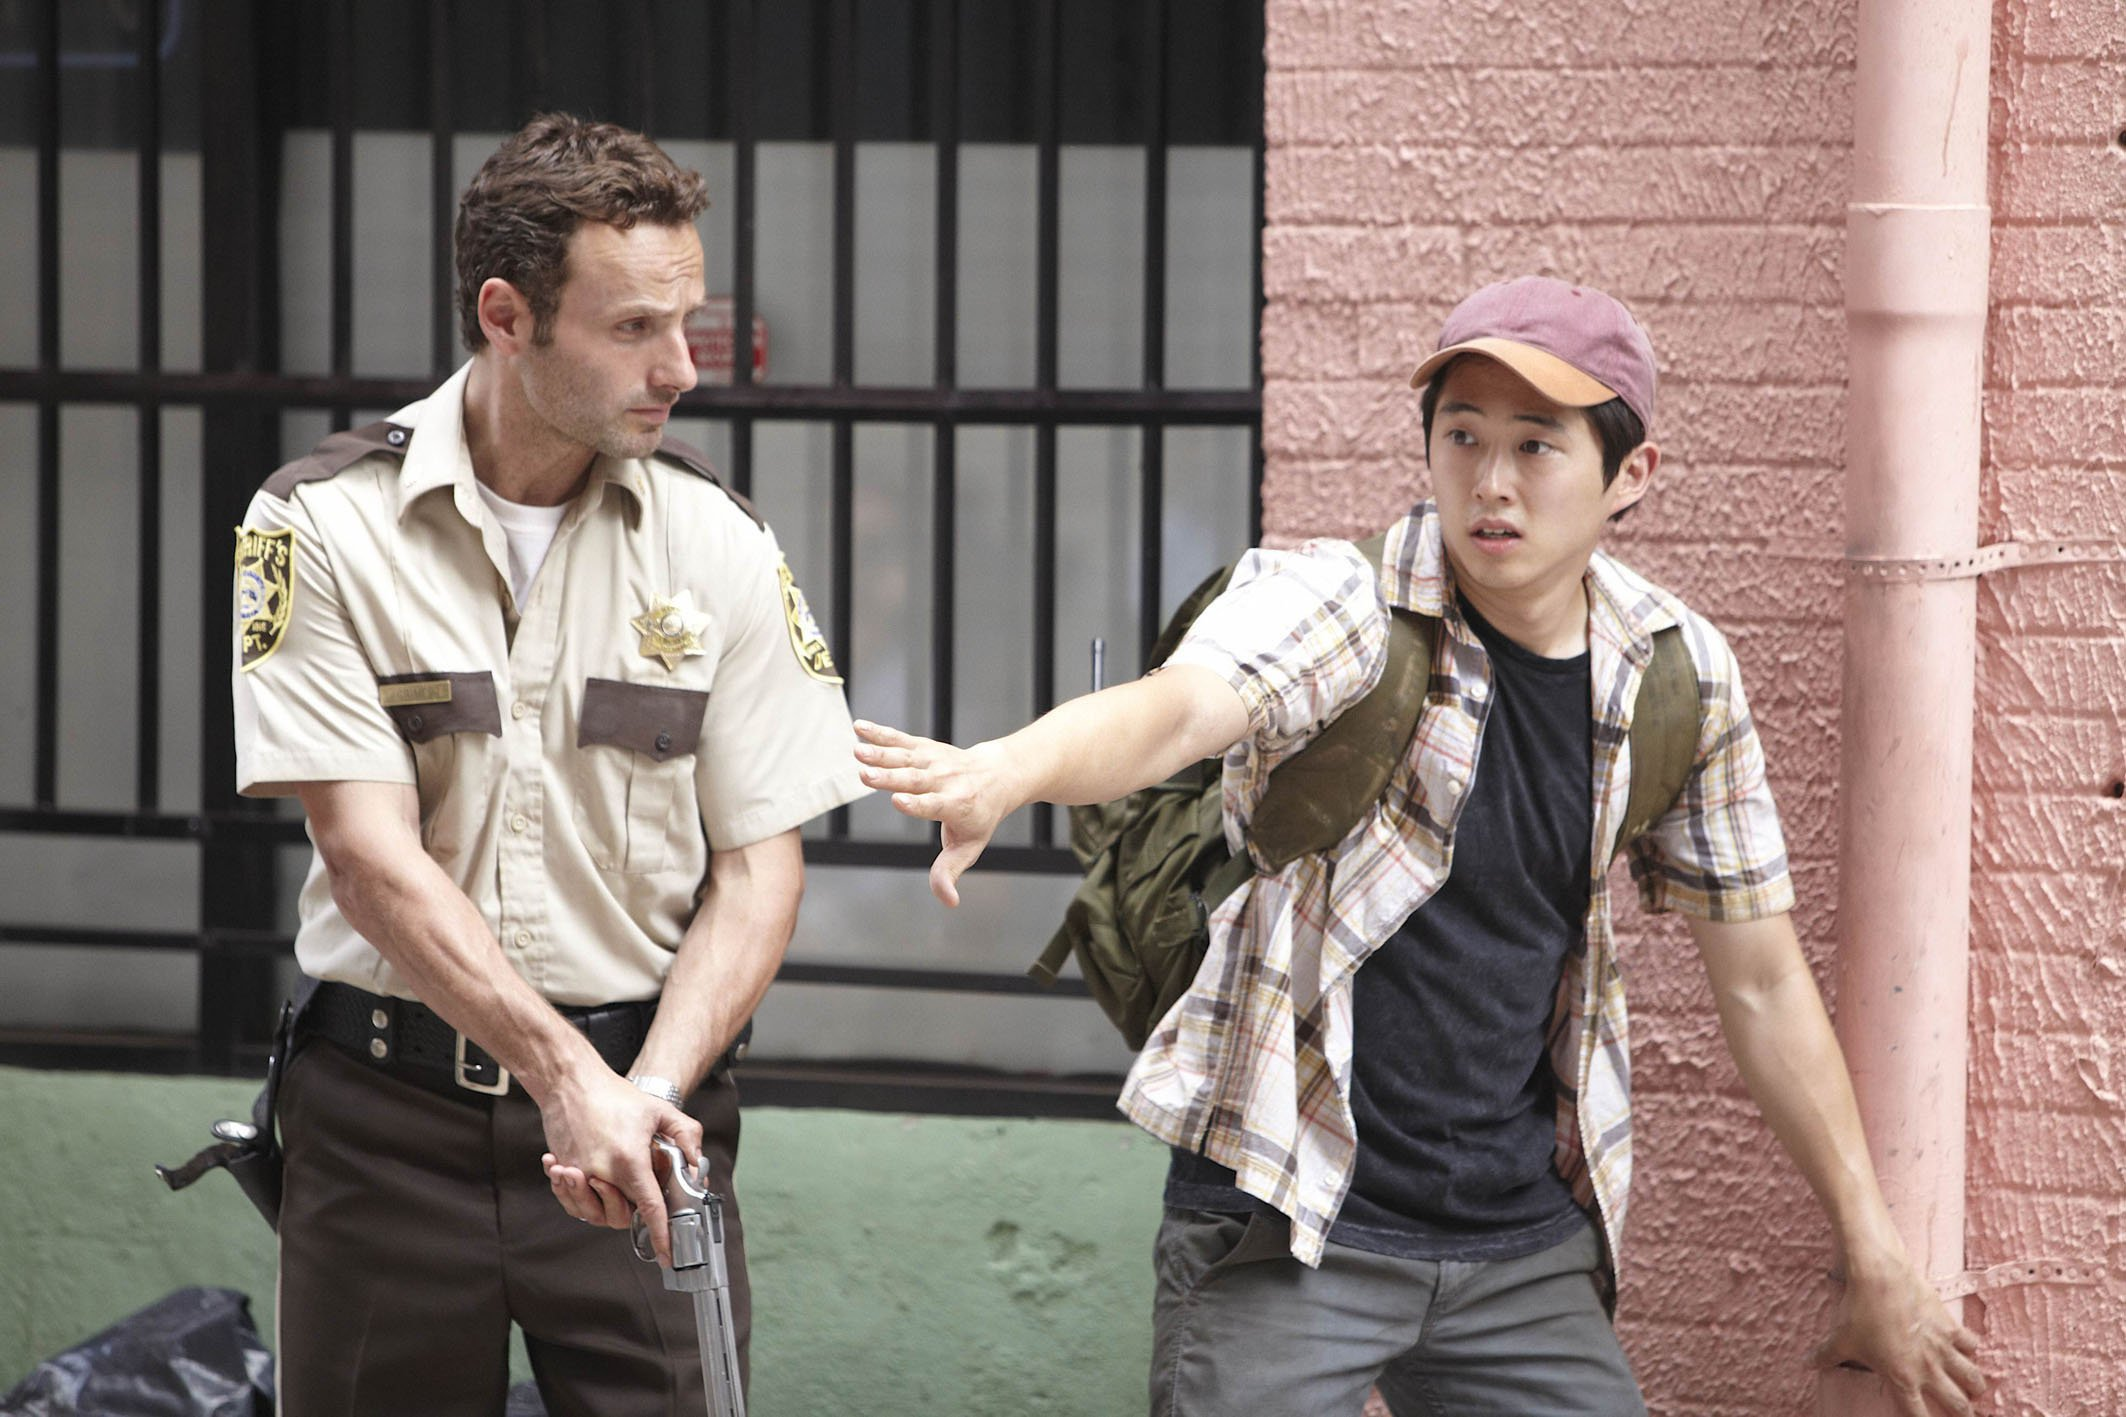 Television programme: The Walking Dead Episode 1.3 Tell It To The Frogs Andrew Lincoln as Rick Grimes and Steven Yeun as Glenn